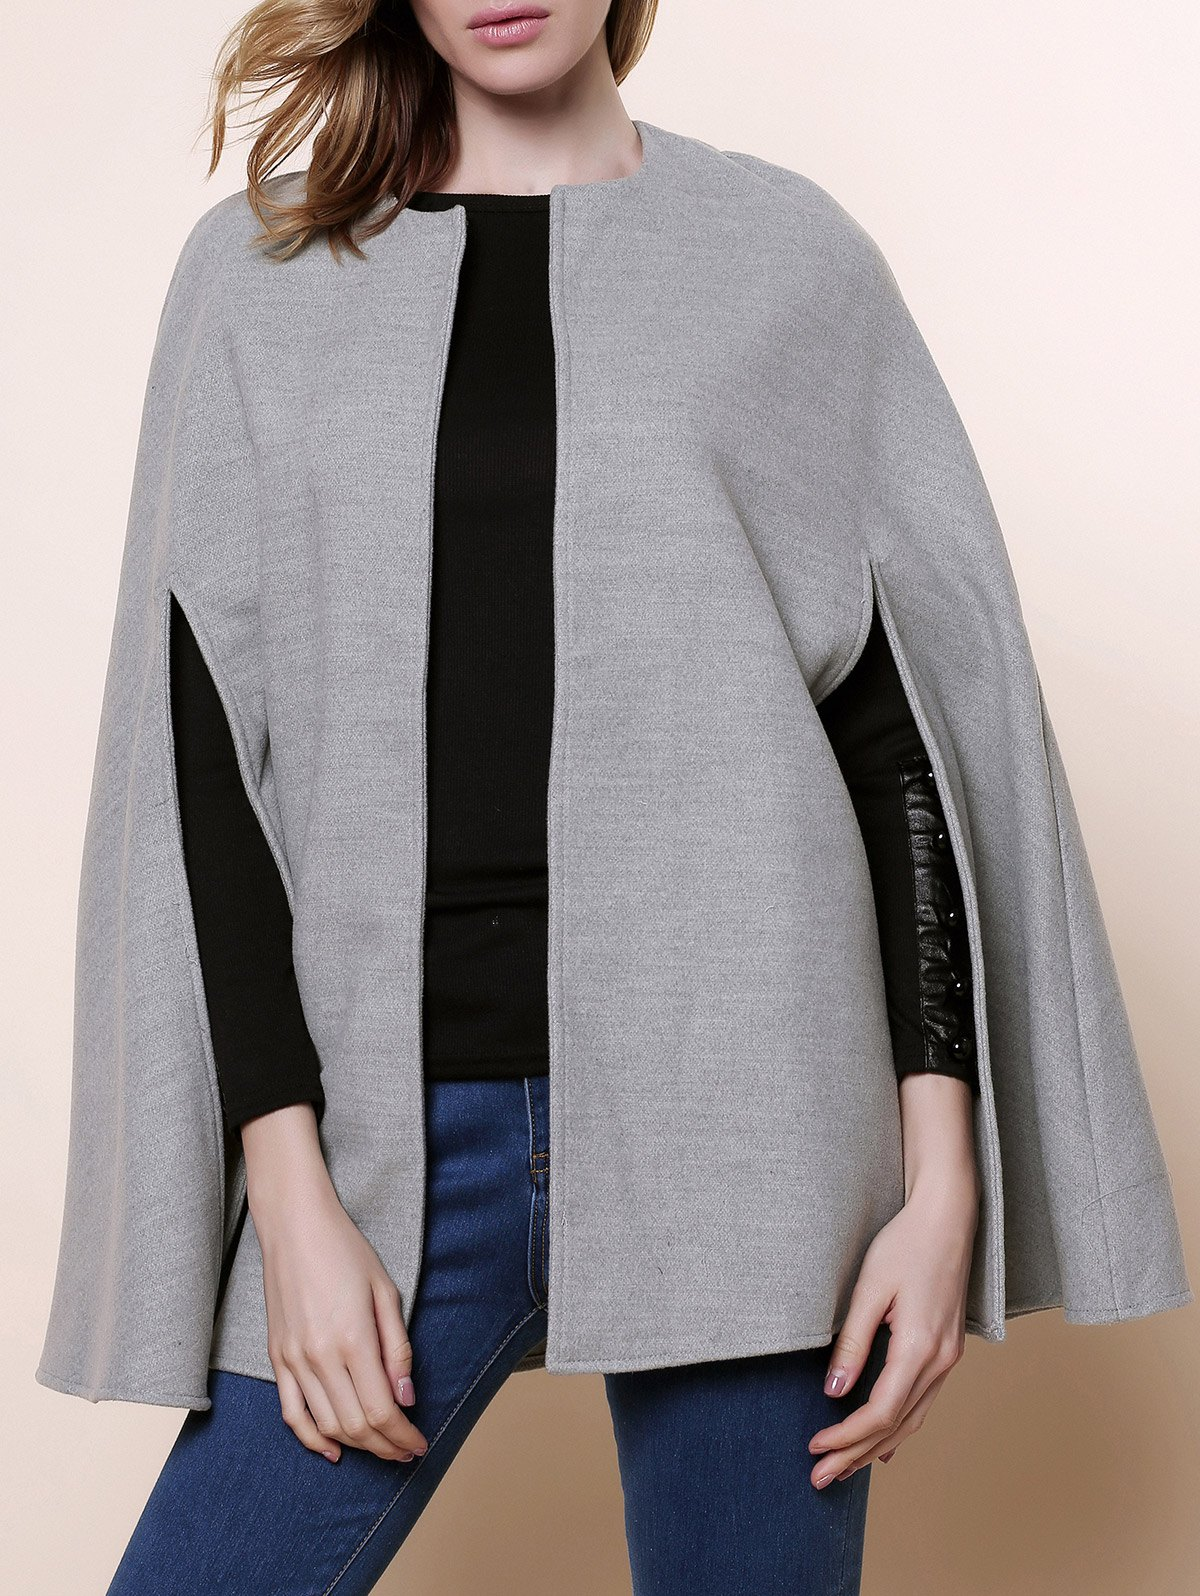 Stylish Round Neck Long Sleeve Asymmetrical Solid Color Women's Coat - GRAY ONE SIZE(FIT SIZE XS TO M)